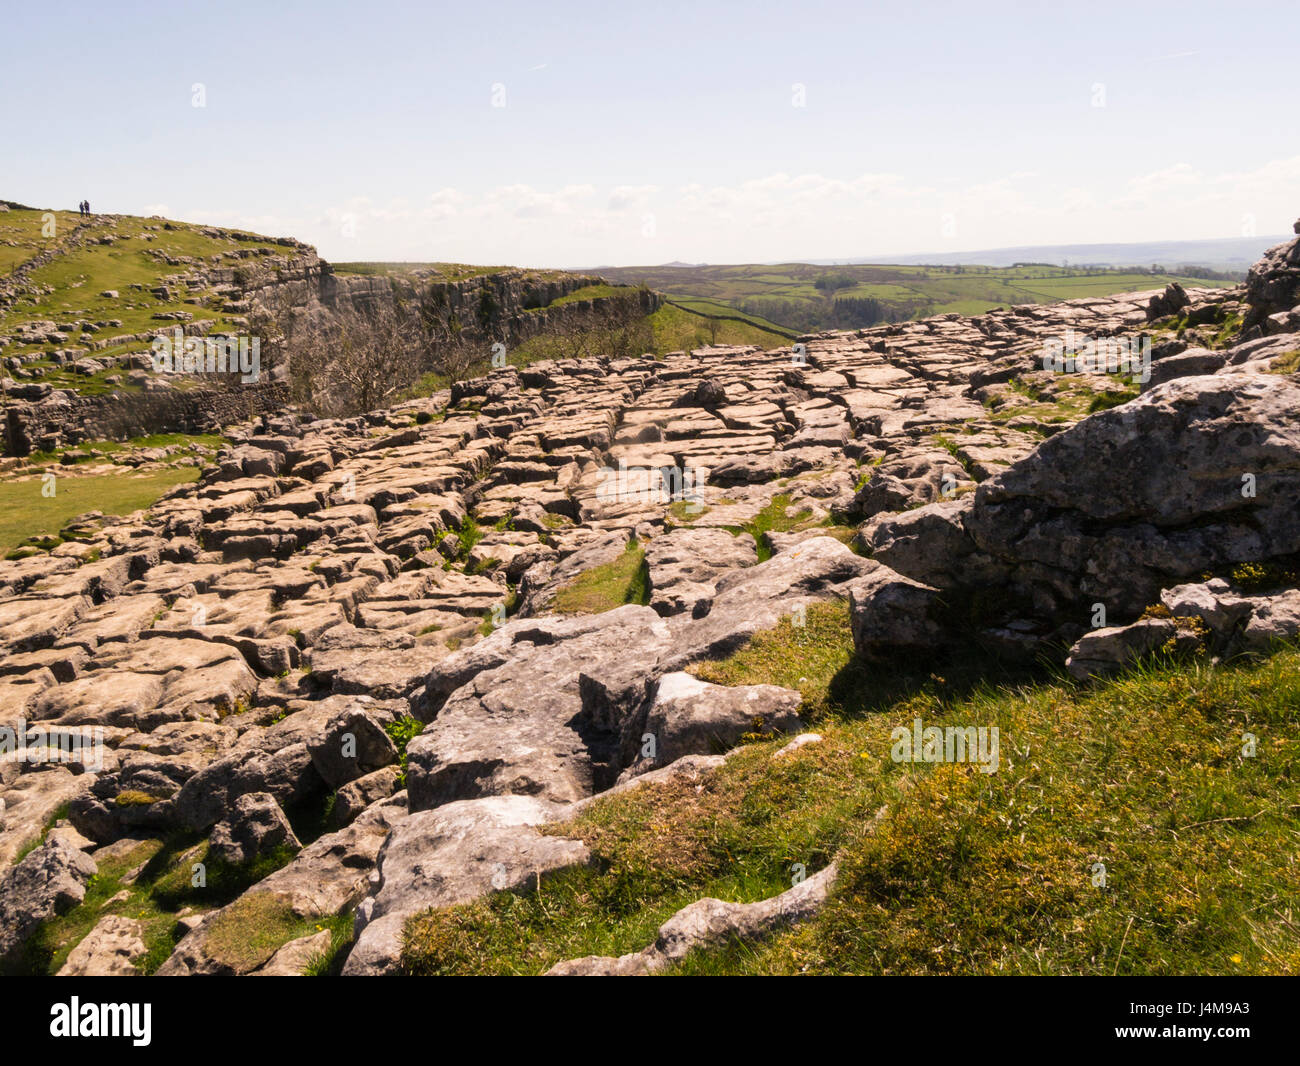 Limestone pavement Malham Cove North Yorkshire Yorkshire Dales National Park on a lovely May day weather blue sky - Stock Image